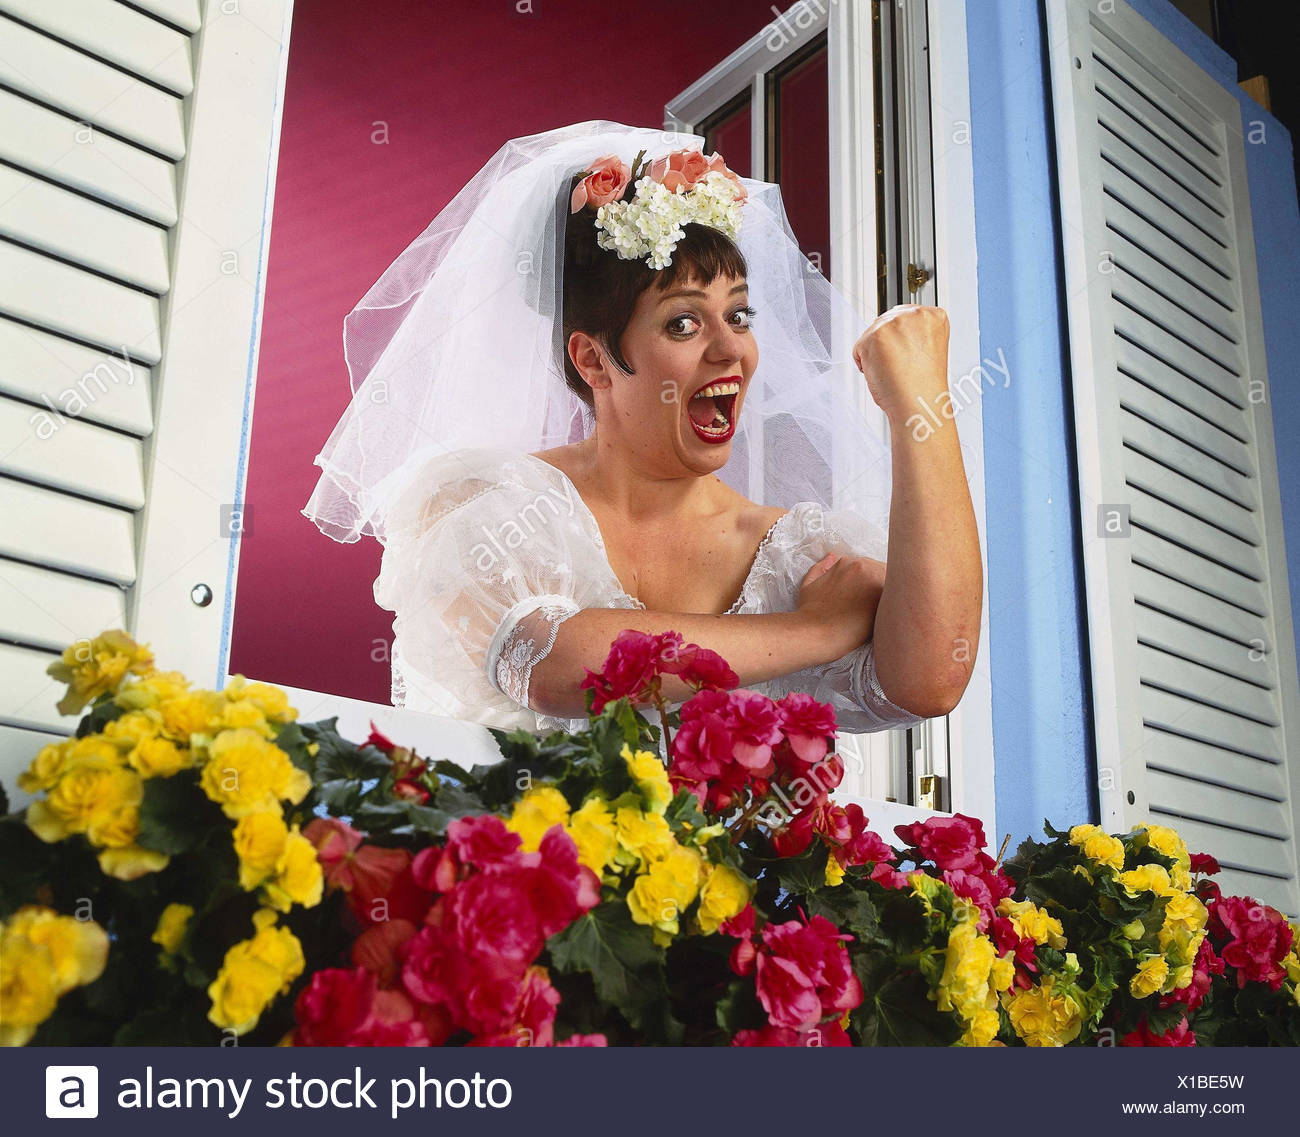 Window, floral decoration, bride, annoys, get angry, gesture, threat, insults Heavy Weights, studio, woman, wedding dress, veil, white, wedding, marry, look, view, annoyance, annoy, threaten nastily, furiously, fist, concentrated, arm, upraisedly, offend, Stock Photo